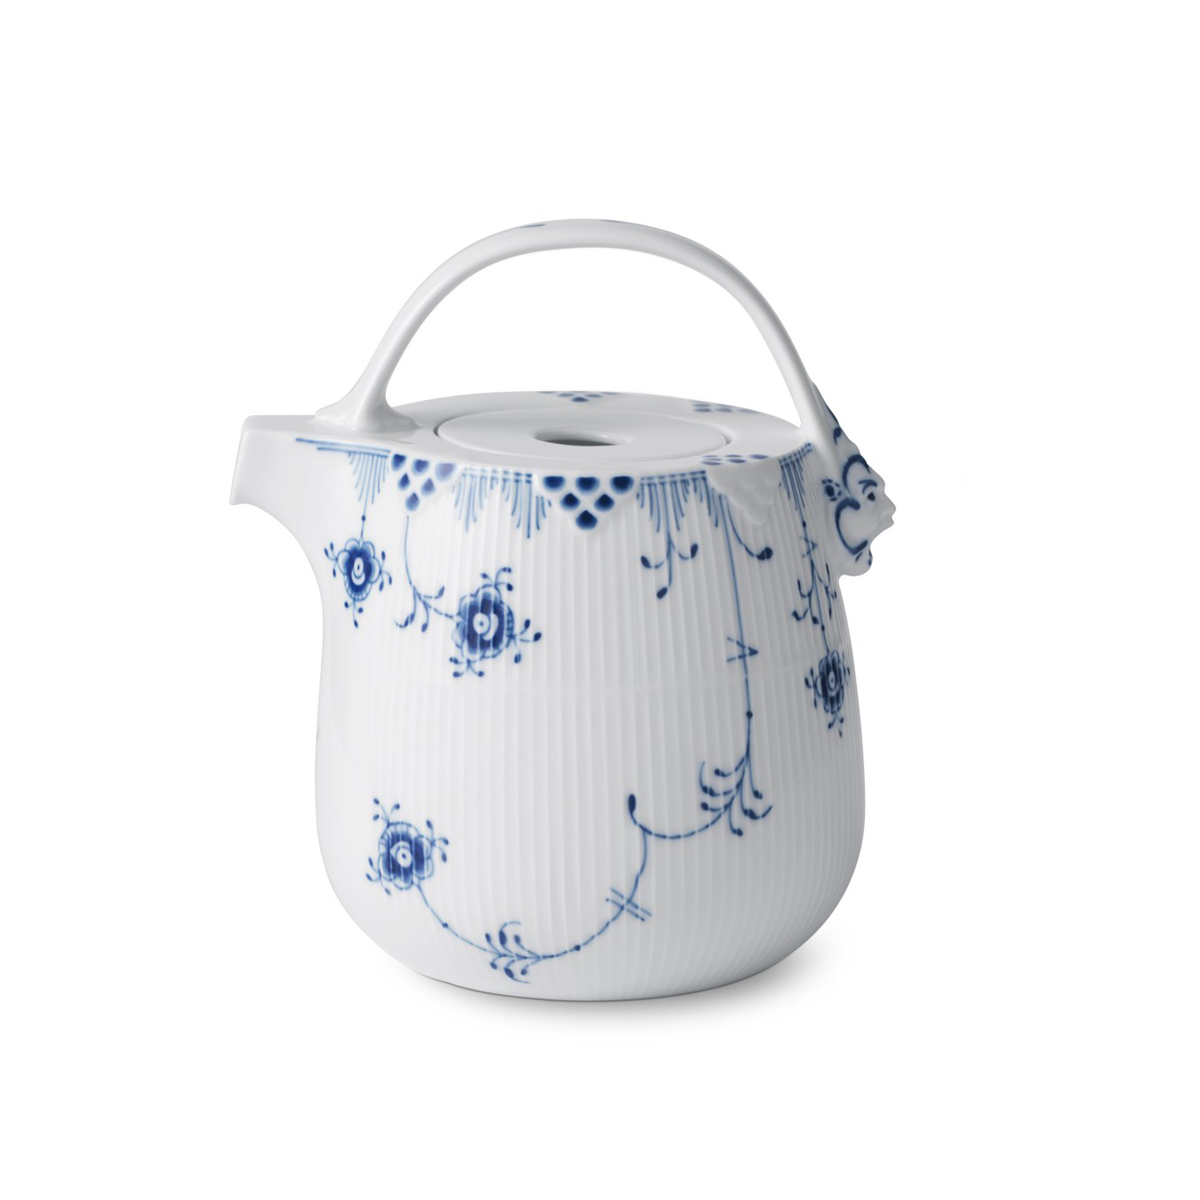 Royal Copenhagen, Blue Elements Teapot 1 Quart